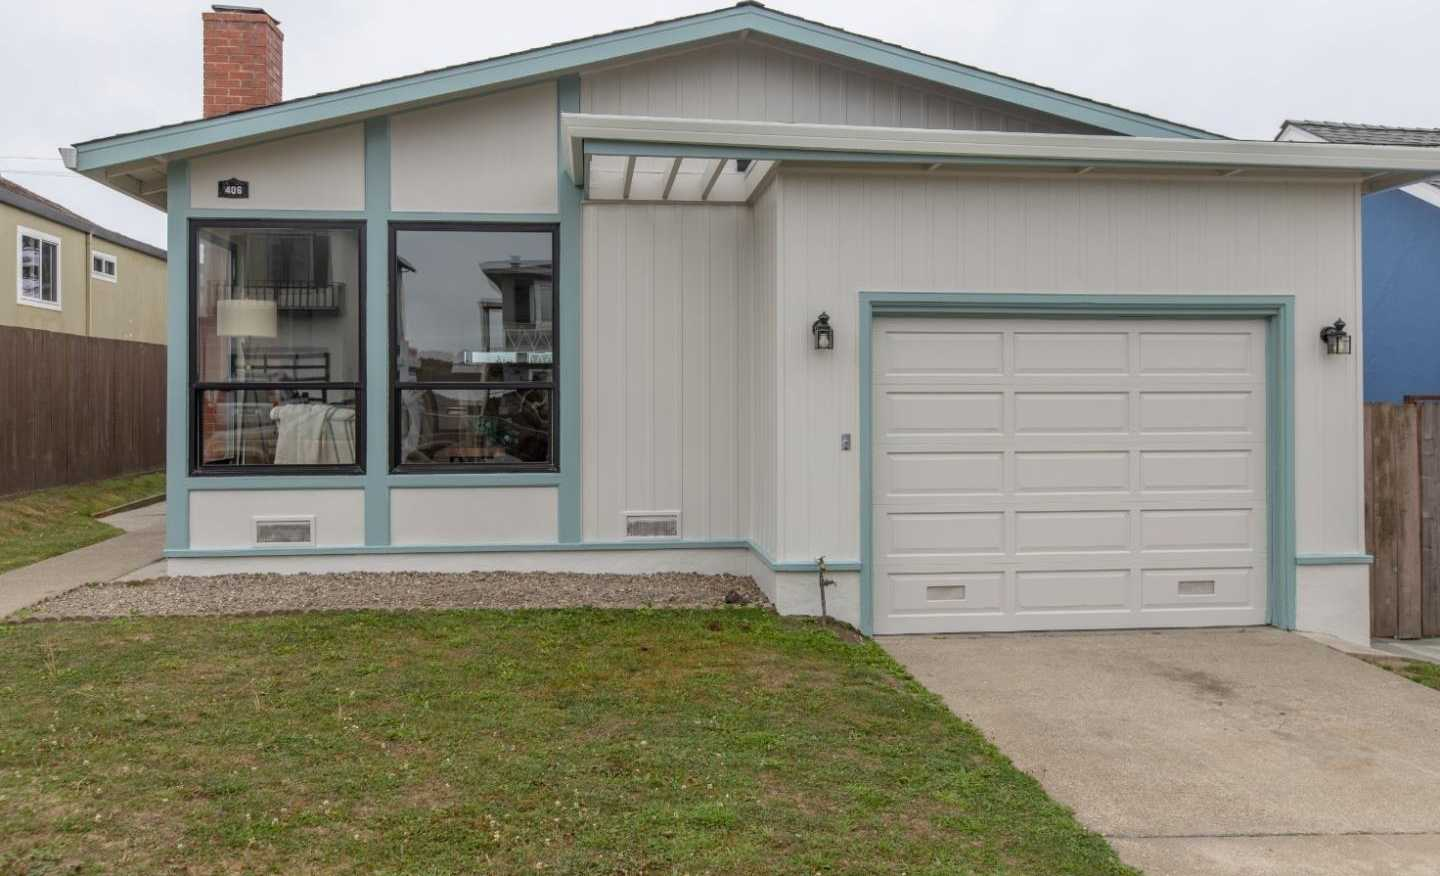 $975,000 - 3Br/1Ba -  for Sale in Pacifica